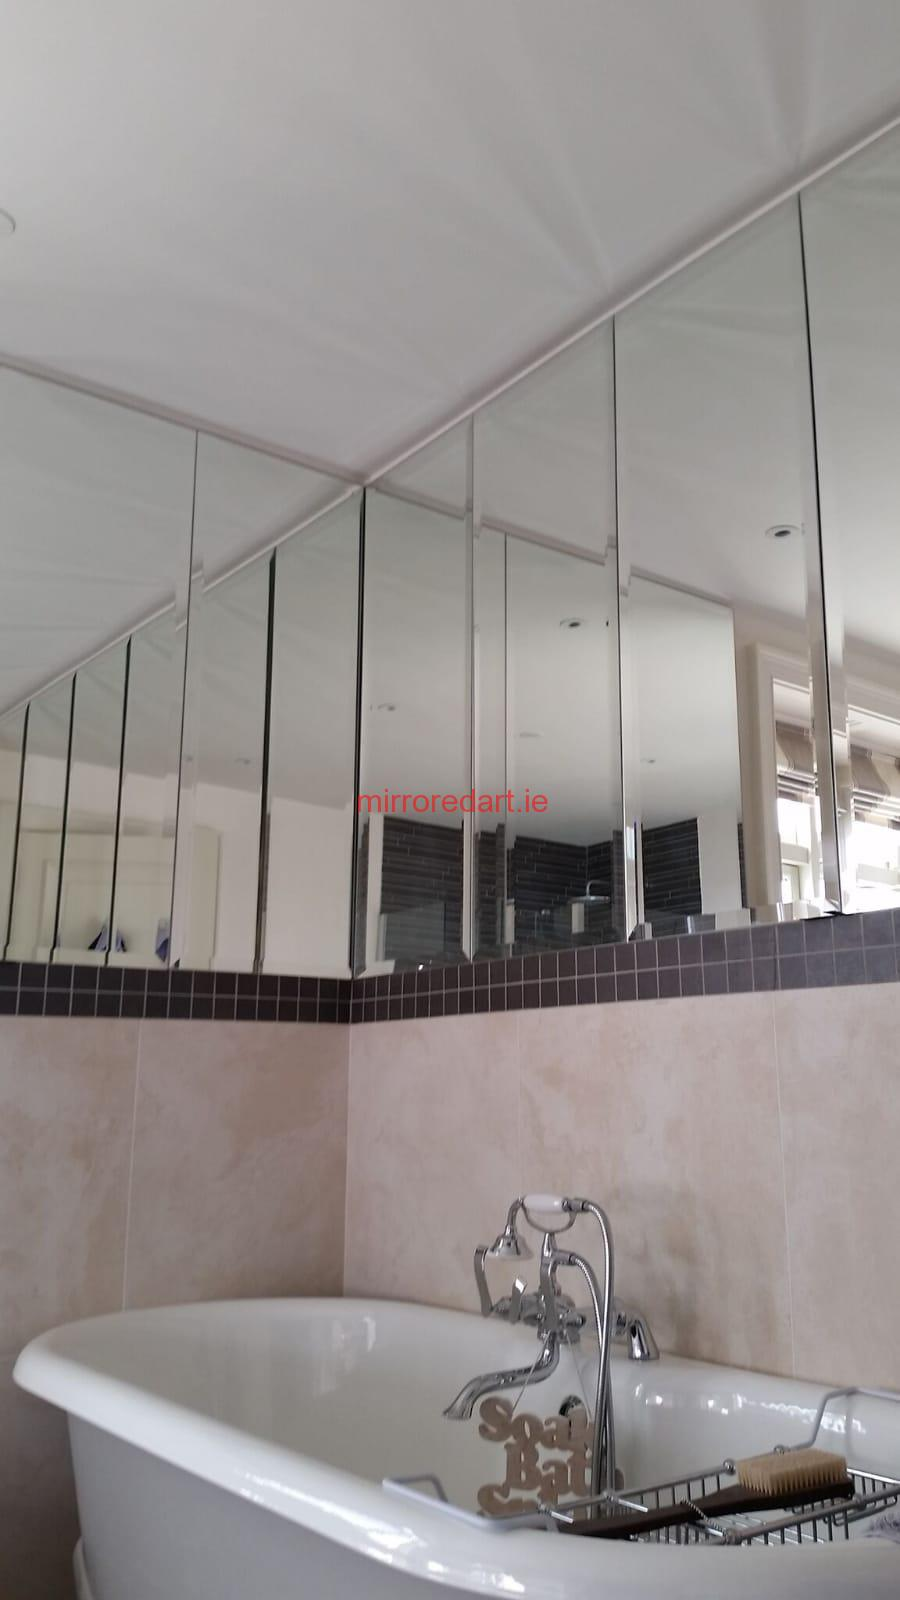 Bevelled mirrors in a vertical format for a Bathroom in Brighton road Leopardstown.